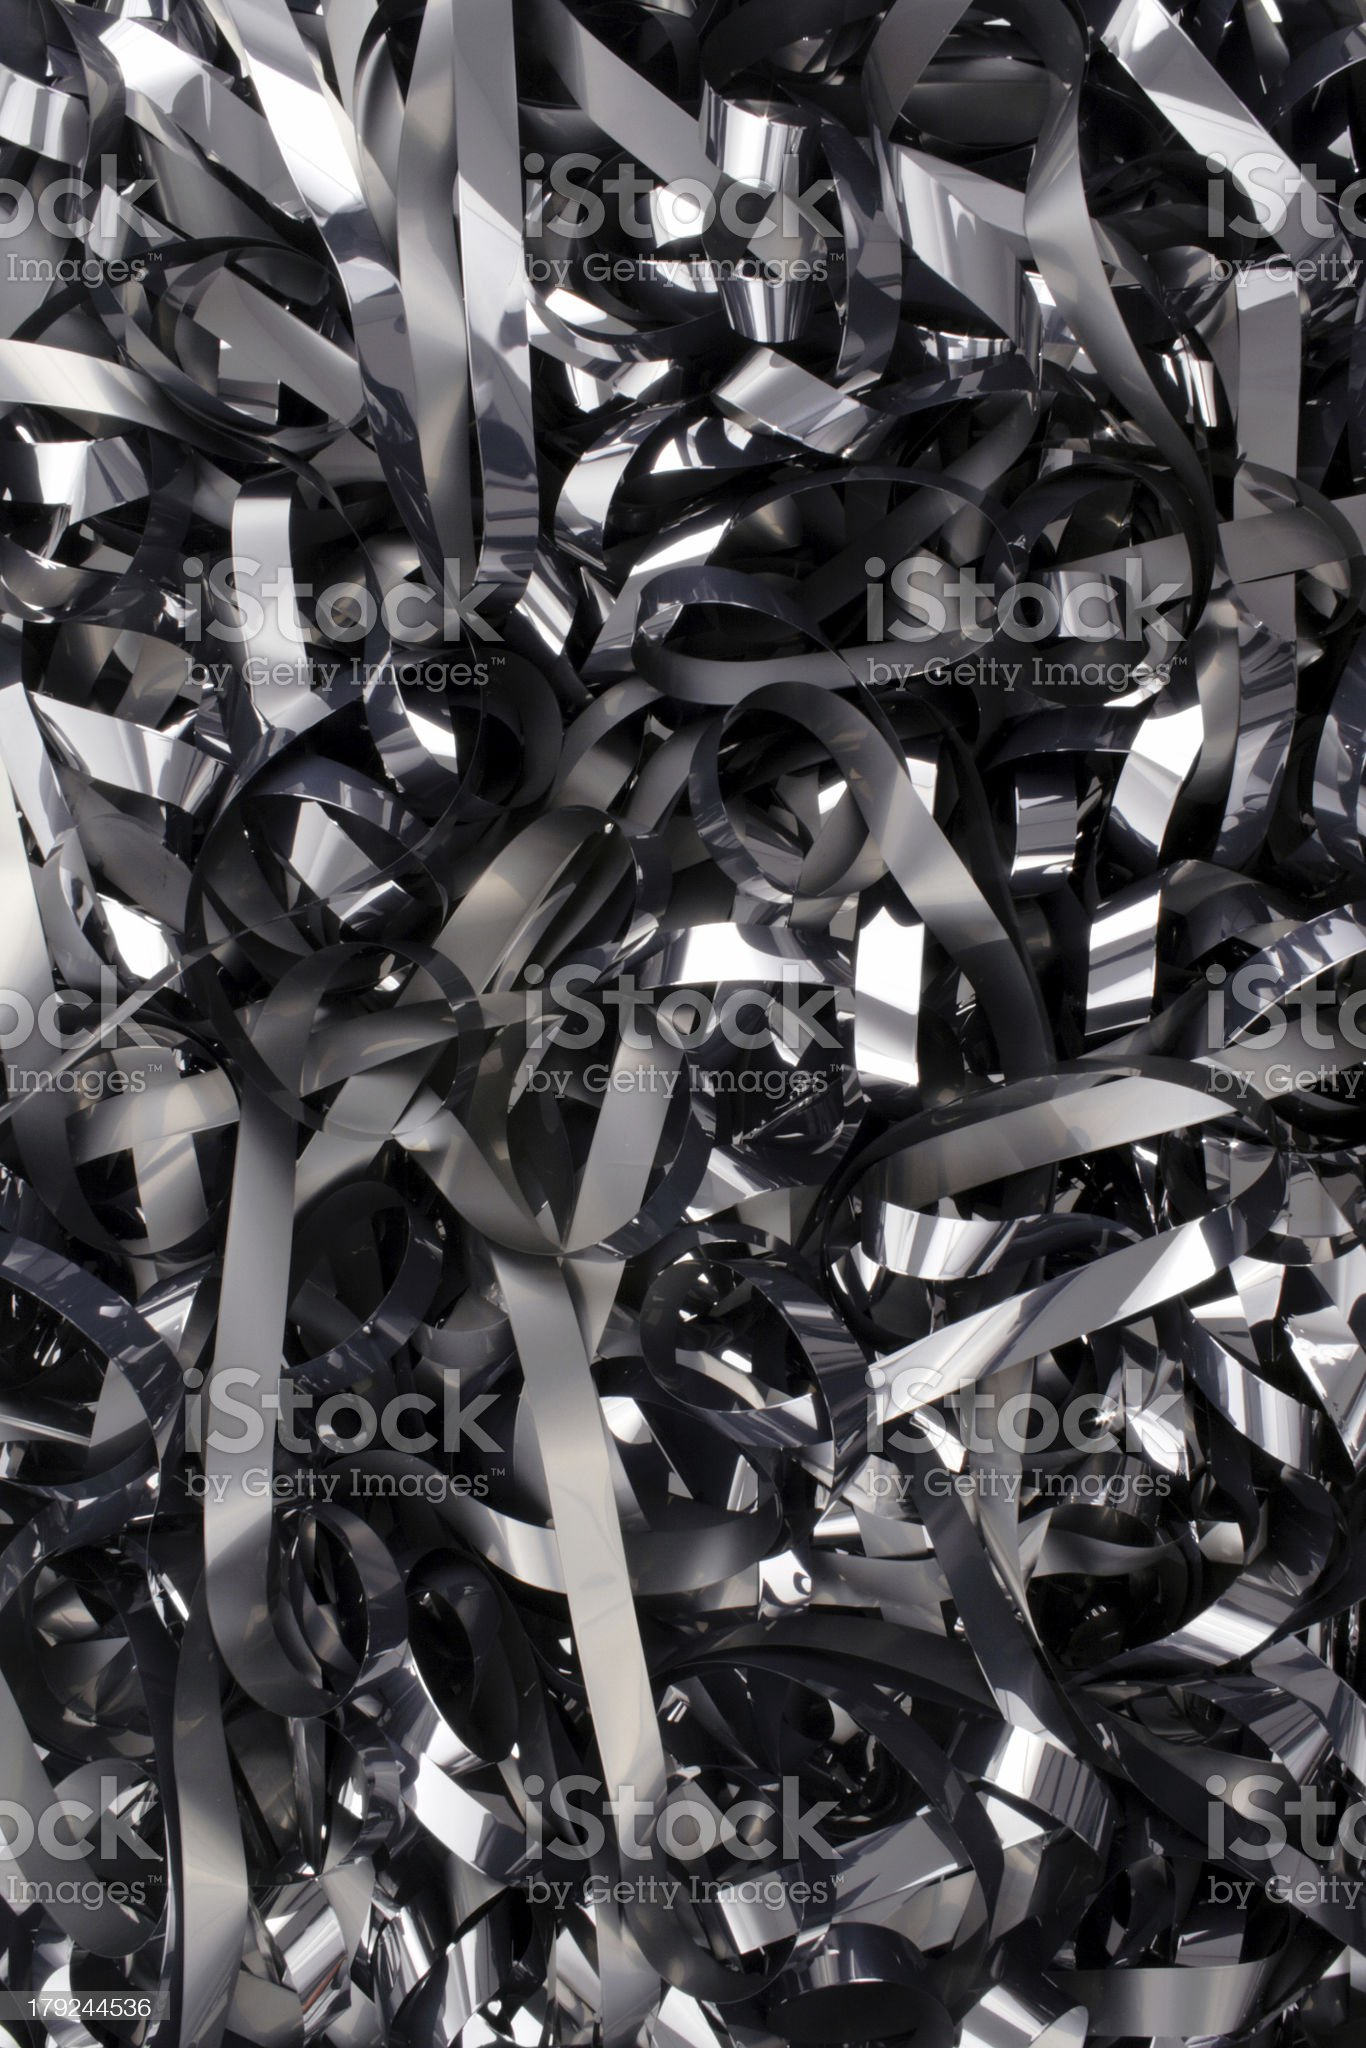 Video tape mess royalty-free stock photo